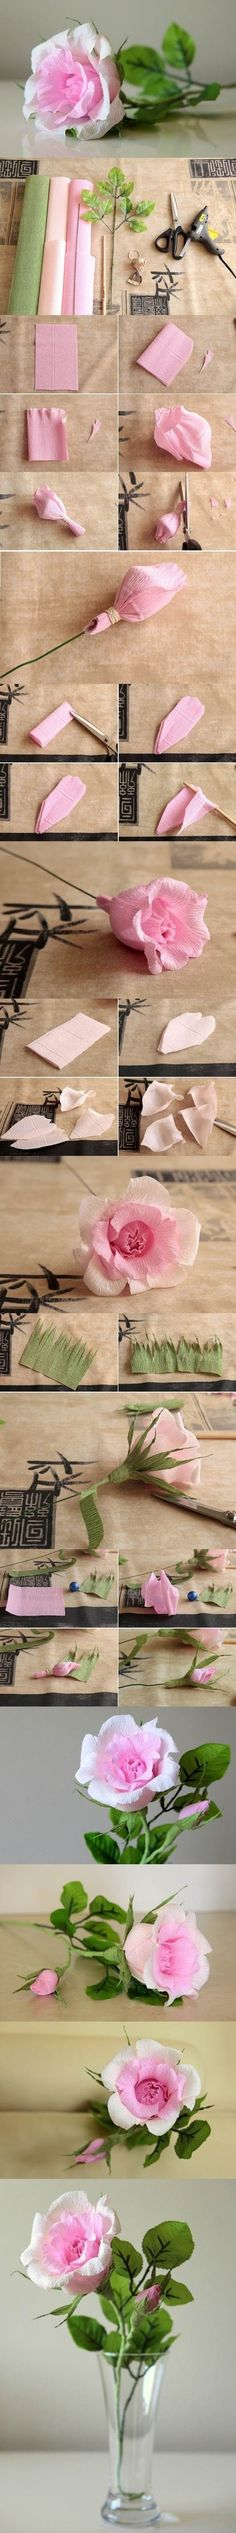 Skilled flower better life # # # beautiful handmade DIY tutorial paper art flowers, material: crepe paper